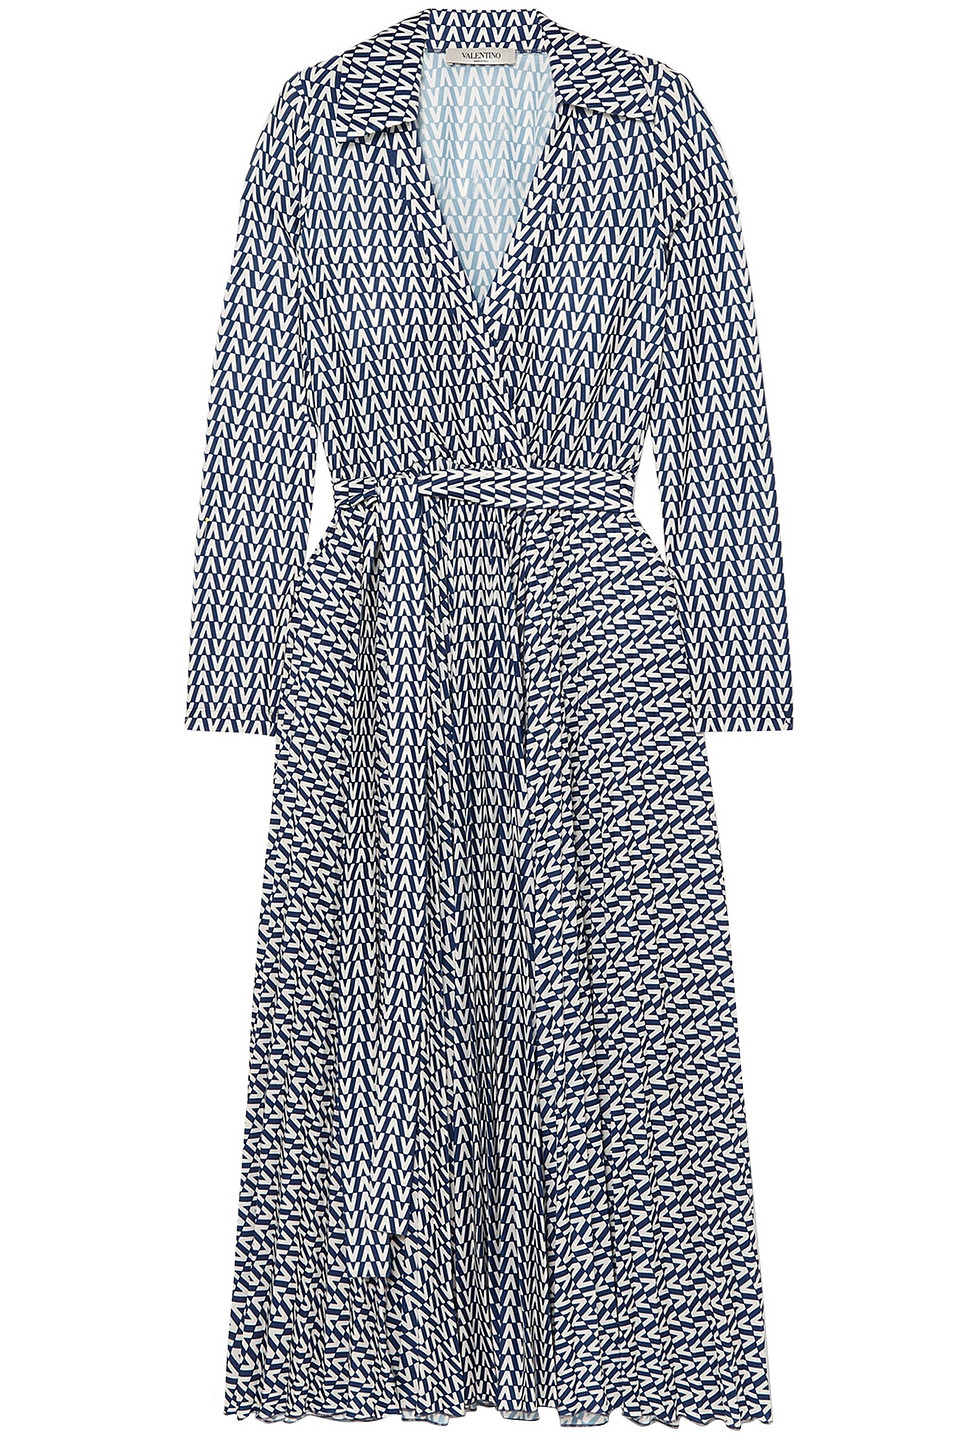 VALENTINO | Valentino Woman Printed Stretch-jersey Wrap Dress Blue | Clouty